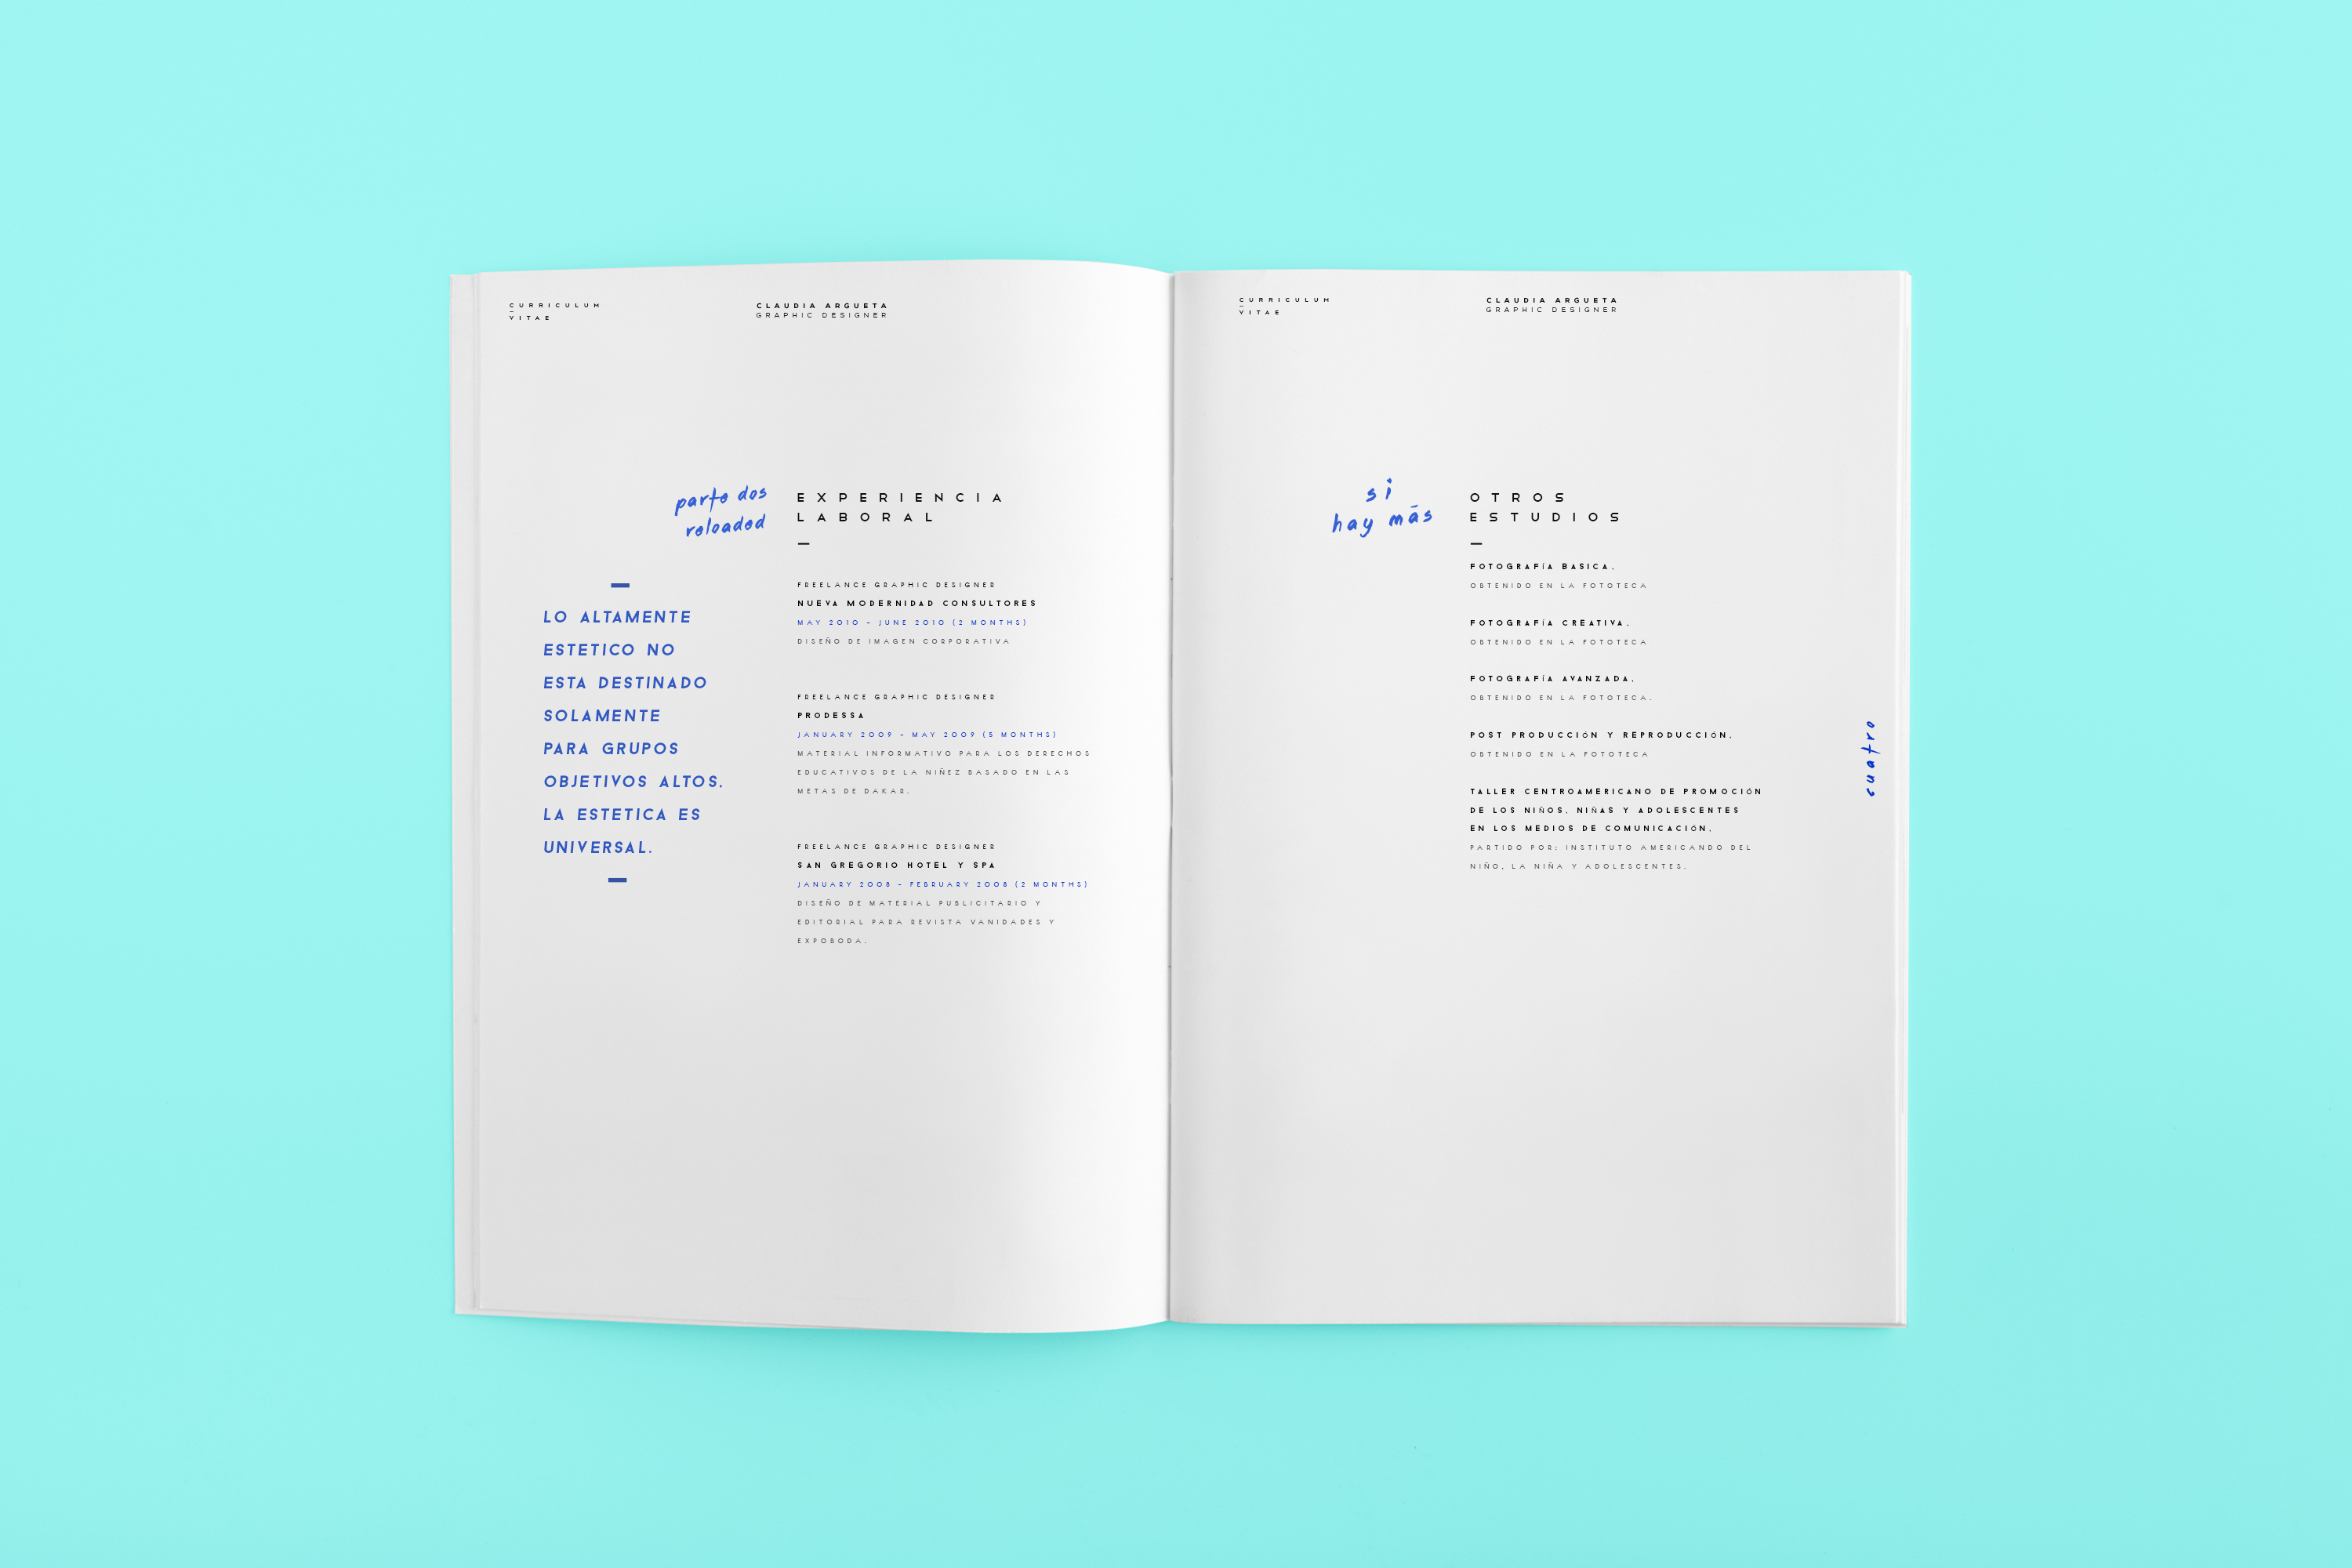 Curriculum Vitae Claudia Argueta On Behance